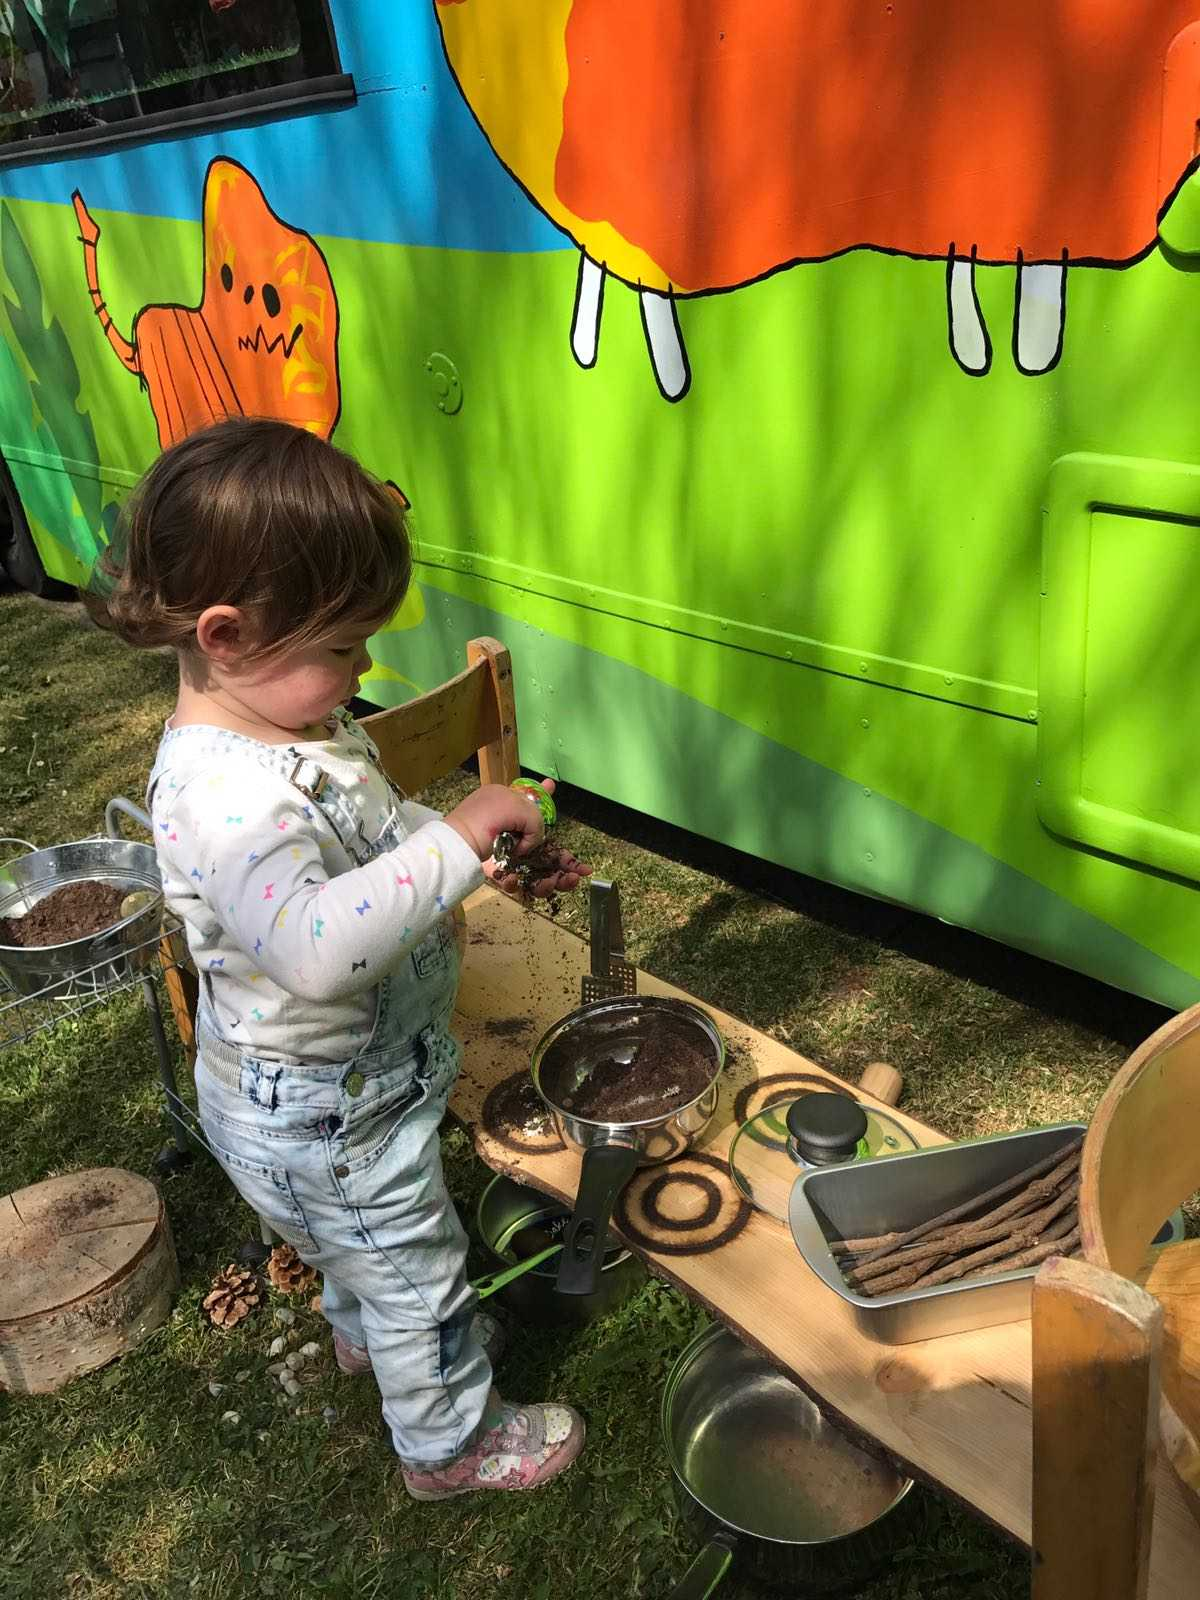 Mud Kitchen   Bus In Background